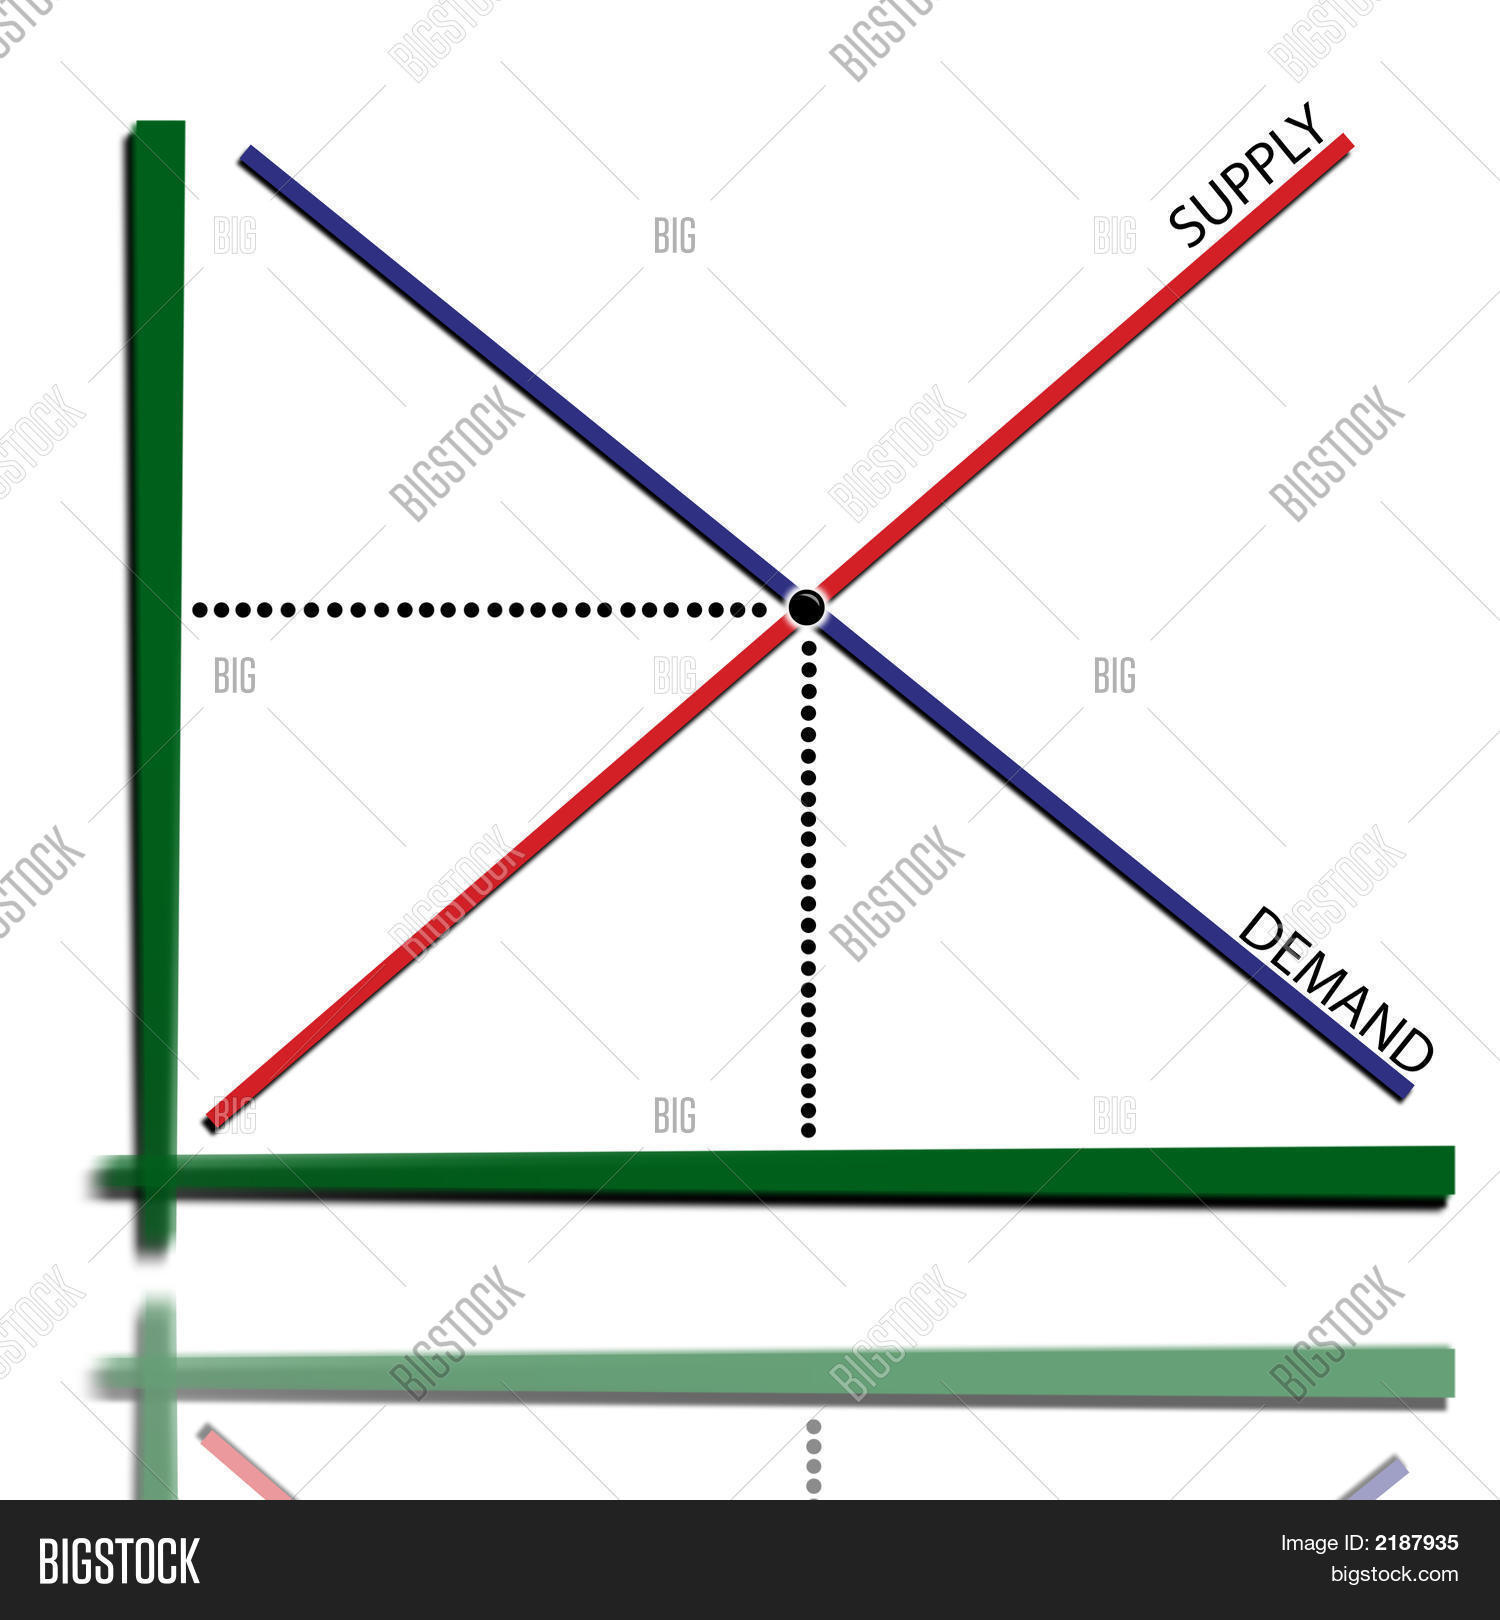 Supply And Demand Diagram Supply Demand Graph Image Photo Free Trial Bigstock